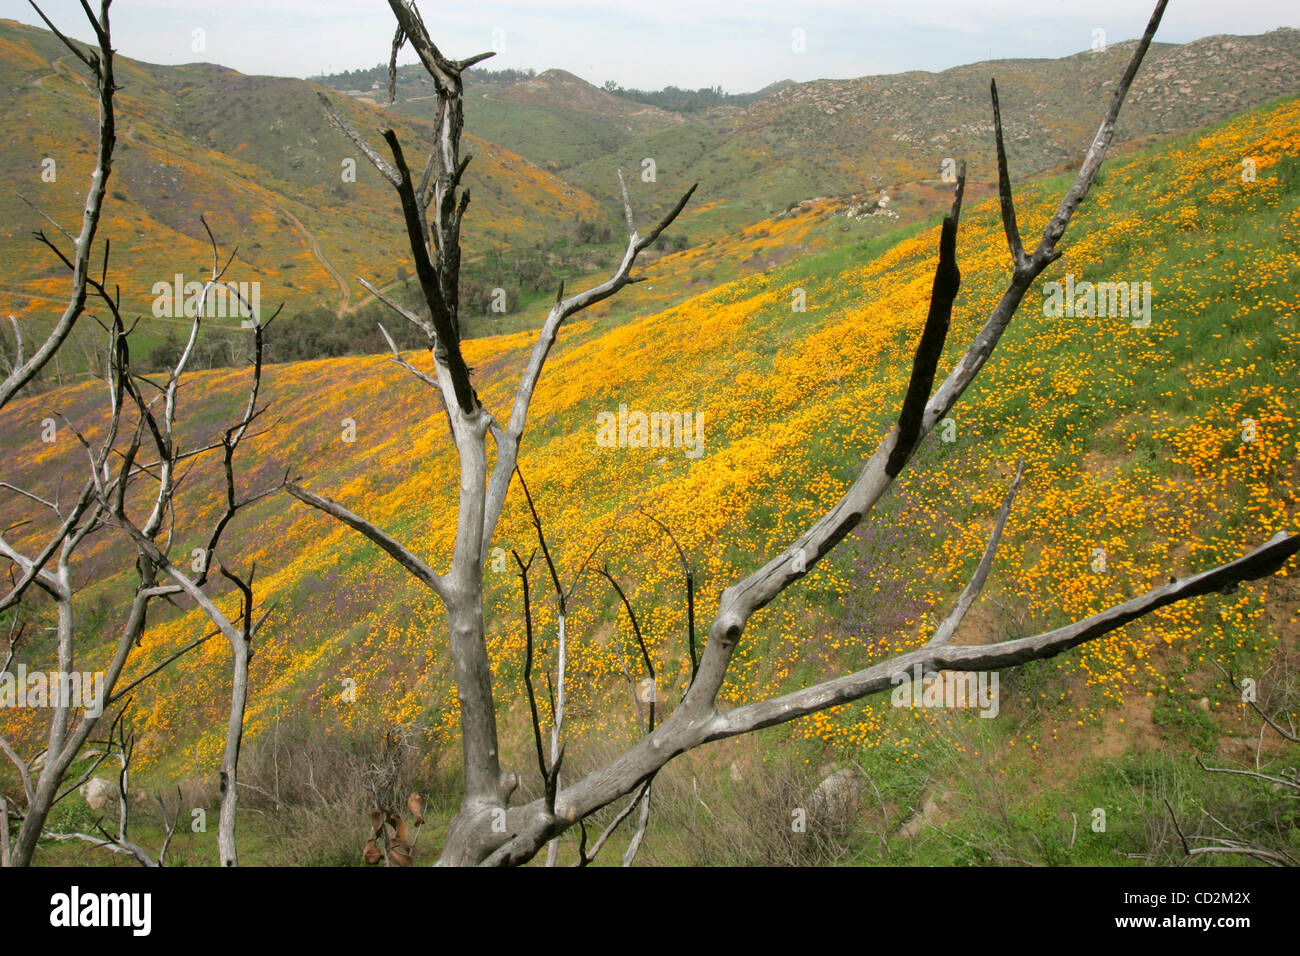 March 12, 2008, Poway, California, USA_Burned scub from last October's Witch Creek Fire stands on the blooming - Stock Image